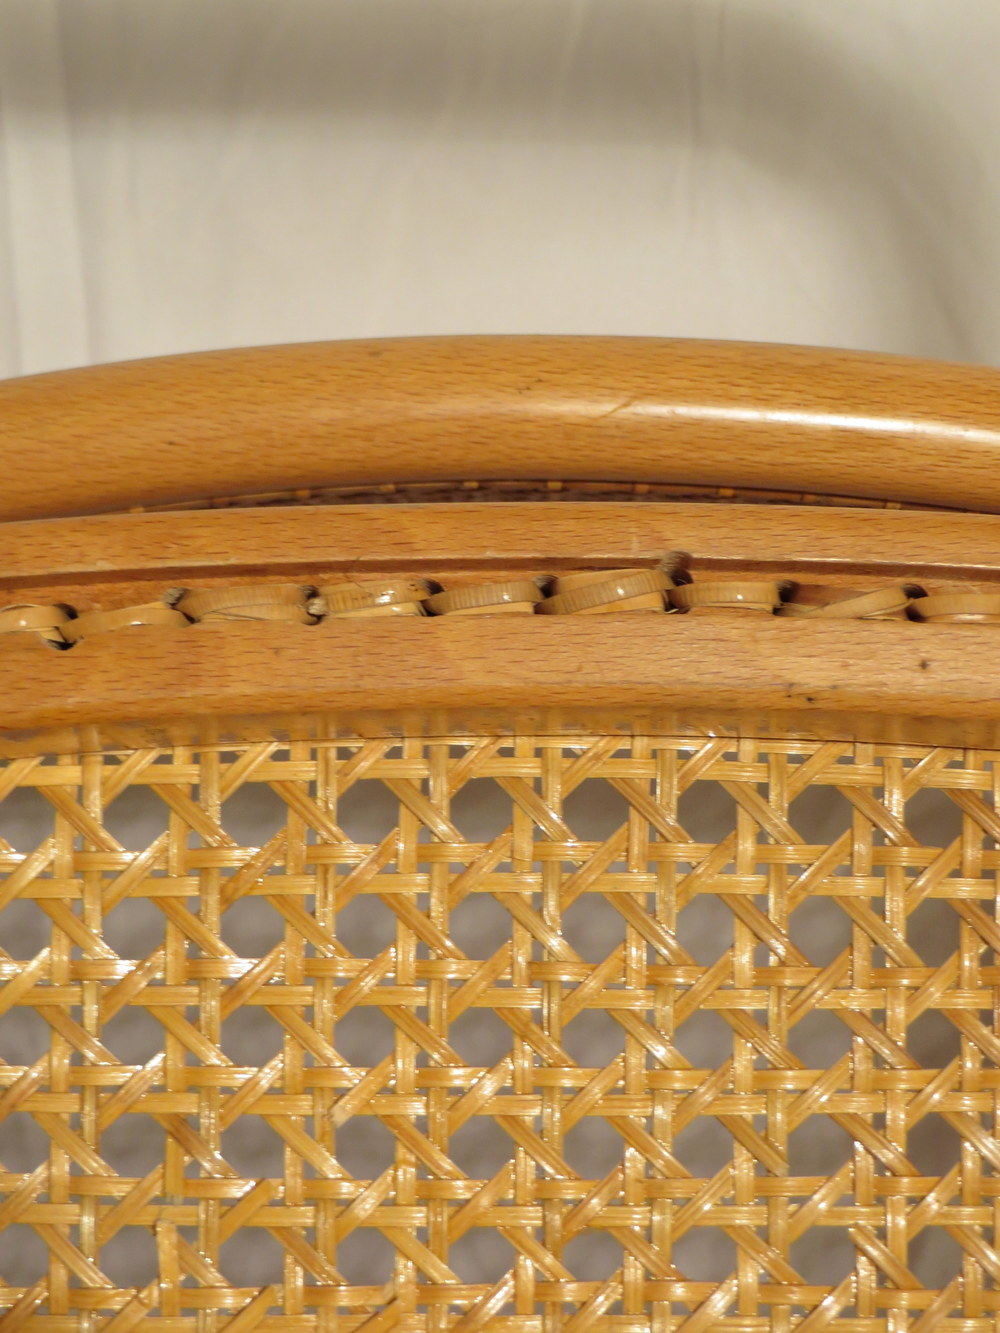 The cane on the Knoll chair is hand woven.